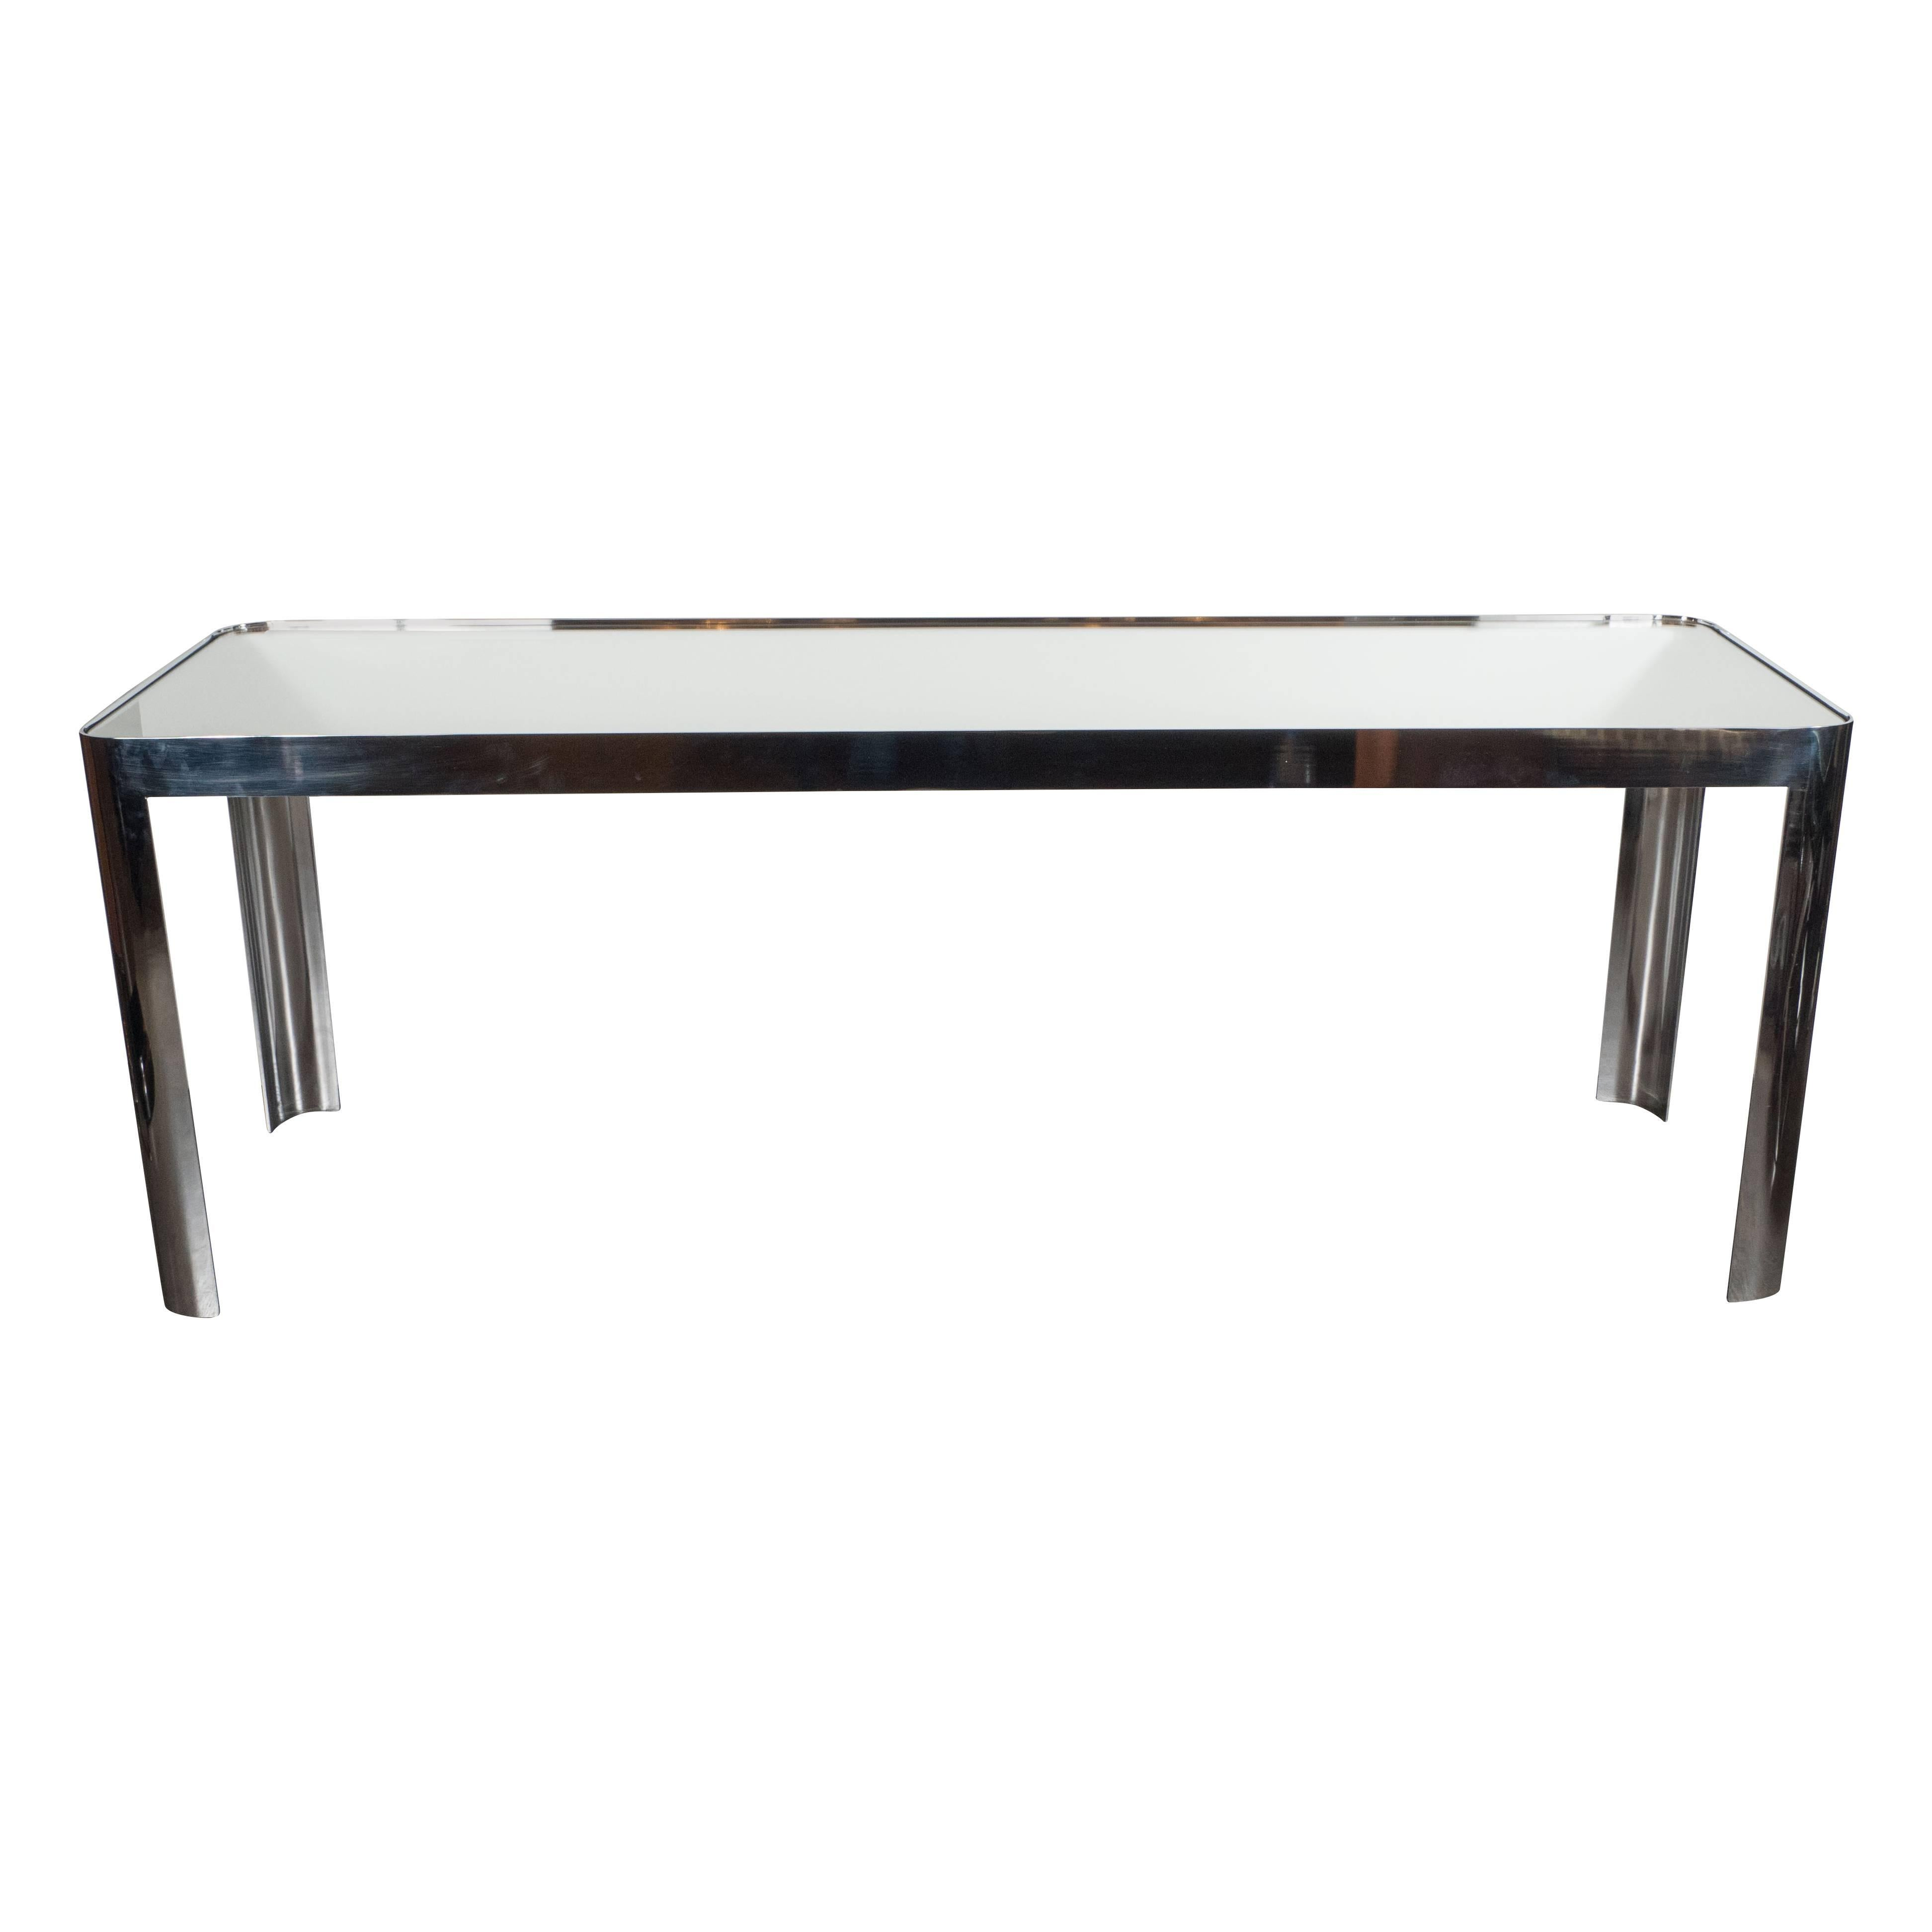 Mid-Century Modernist Console Table in Seamless Polished Chrome & Mirror by Pace